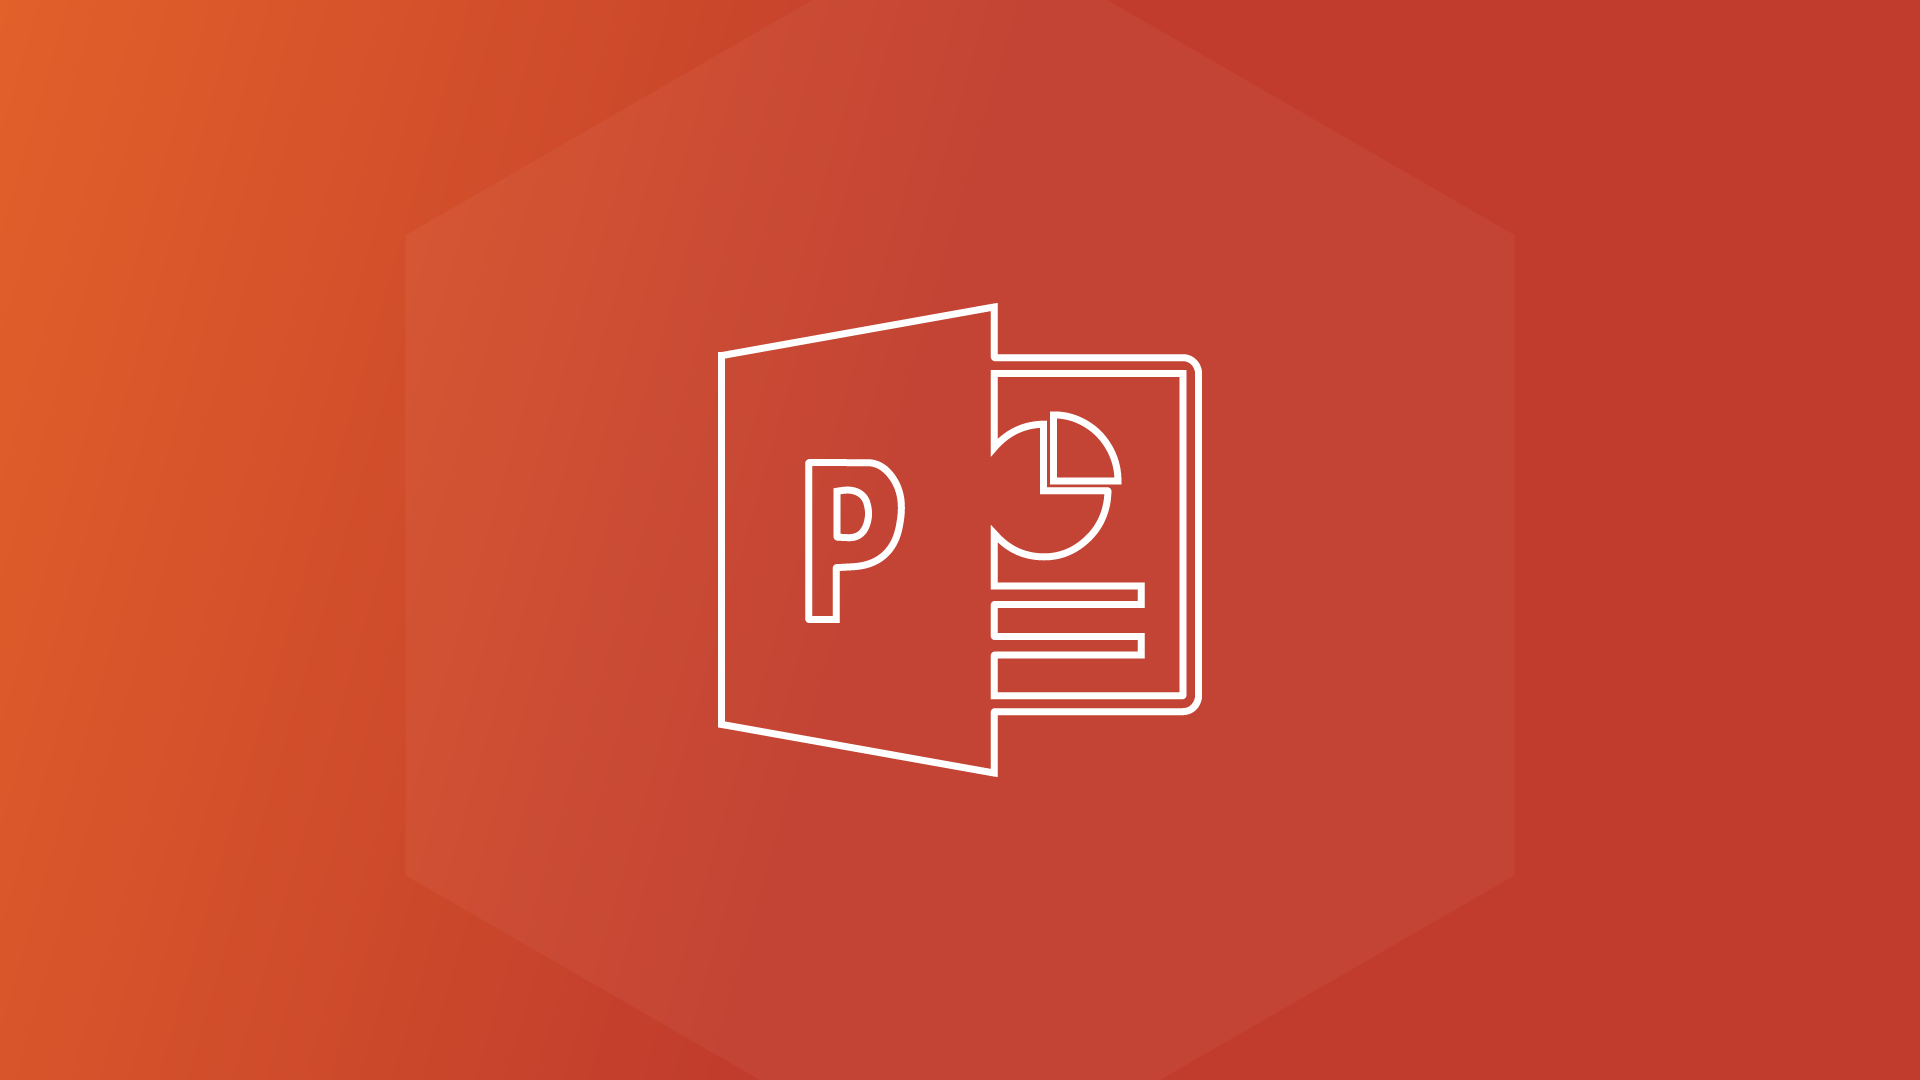 PowerPoint Online - Atomic Learning